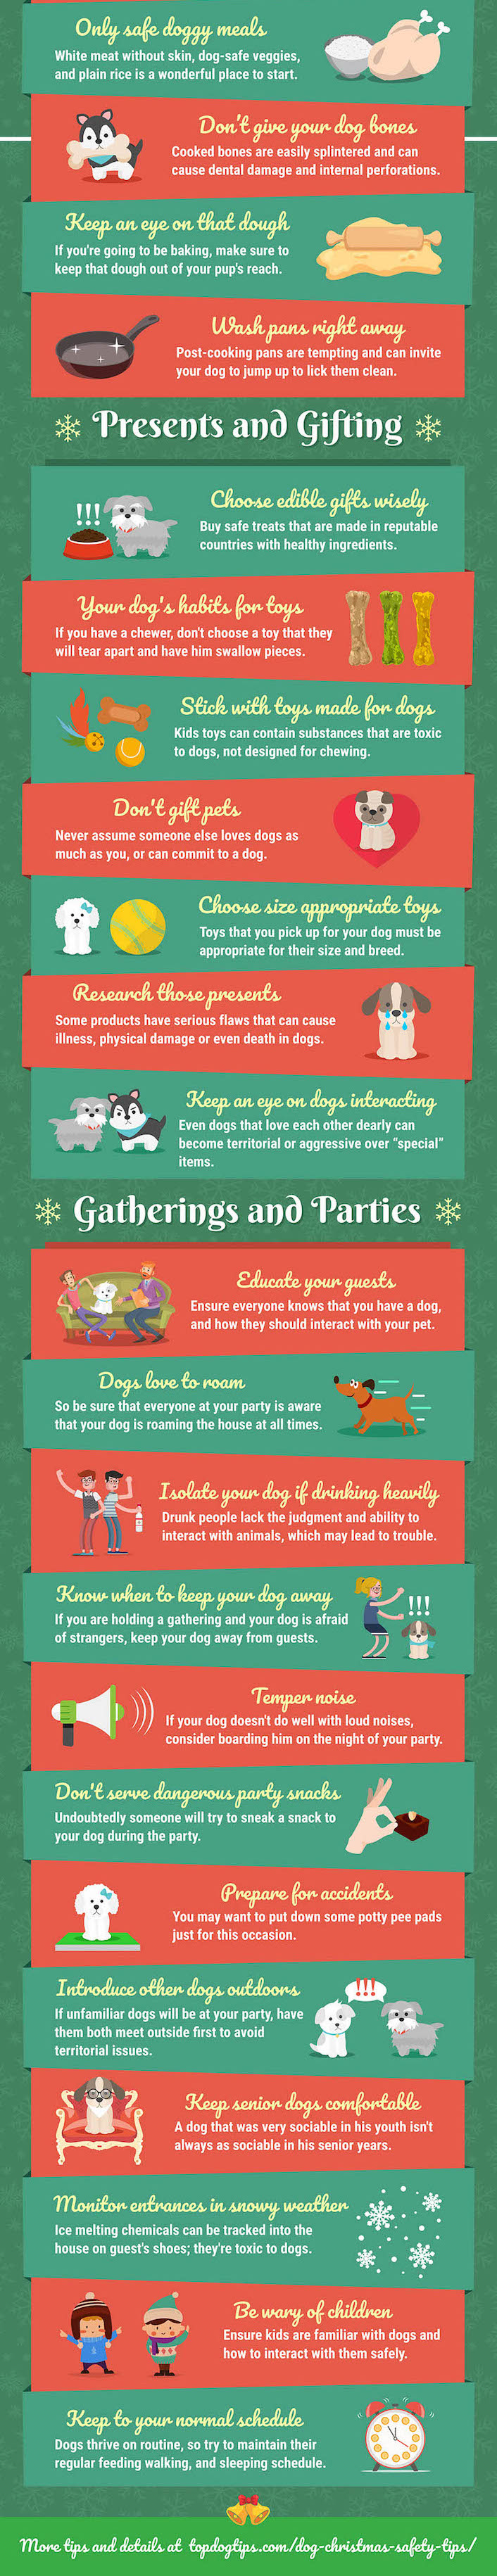 christmas safety tips for pets 2